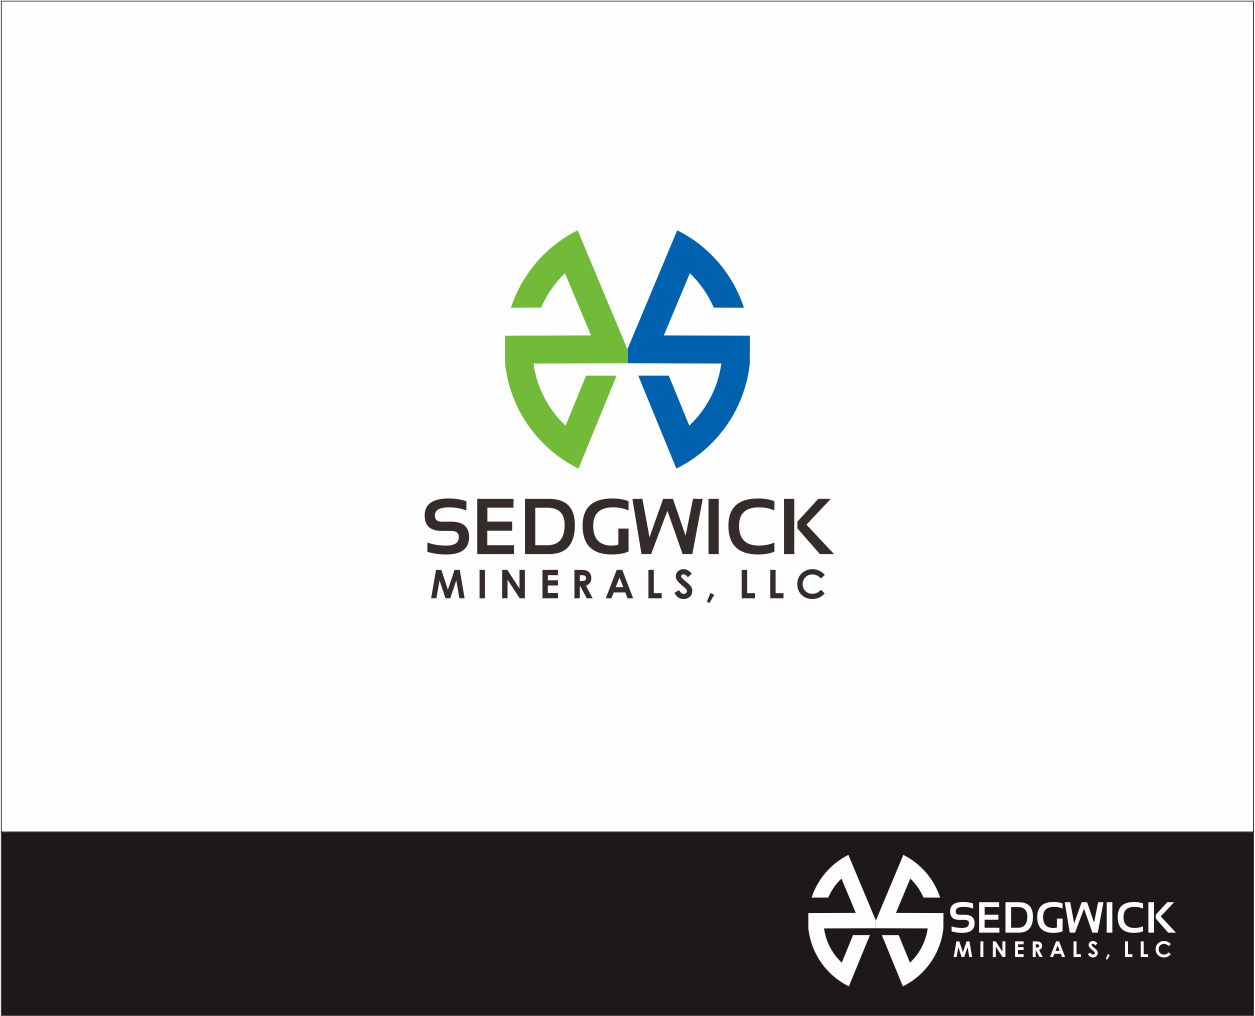 Logo Design by Armada Jamaluddin - Entry No. 47 in the Logo Design Contest Inspiring Logo Design for Sedgwick Minerals, LLC.